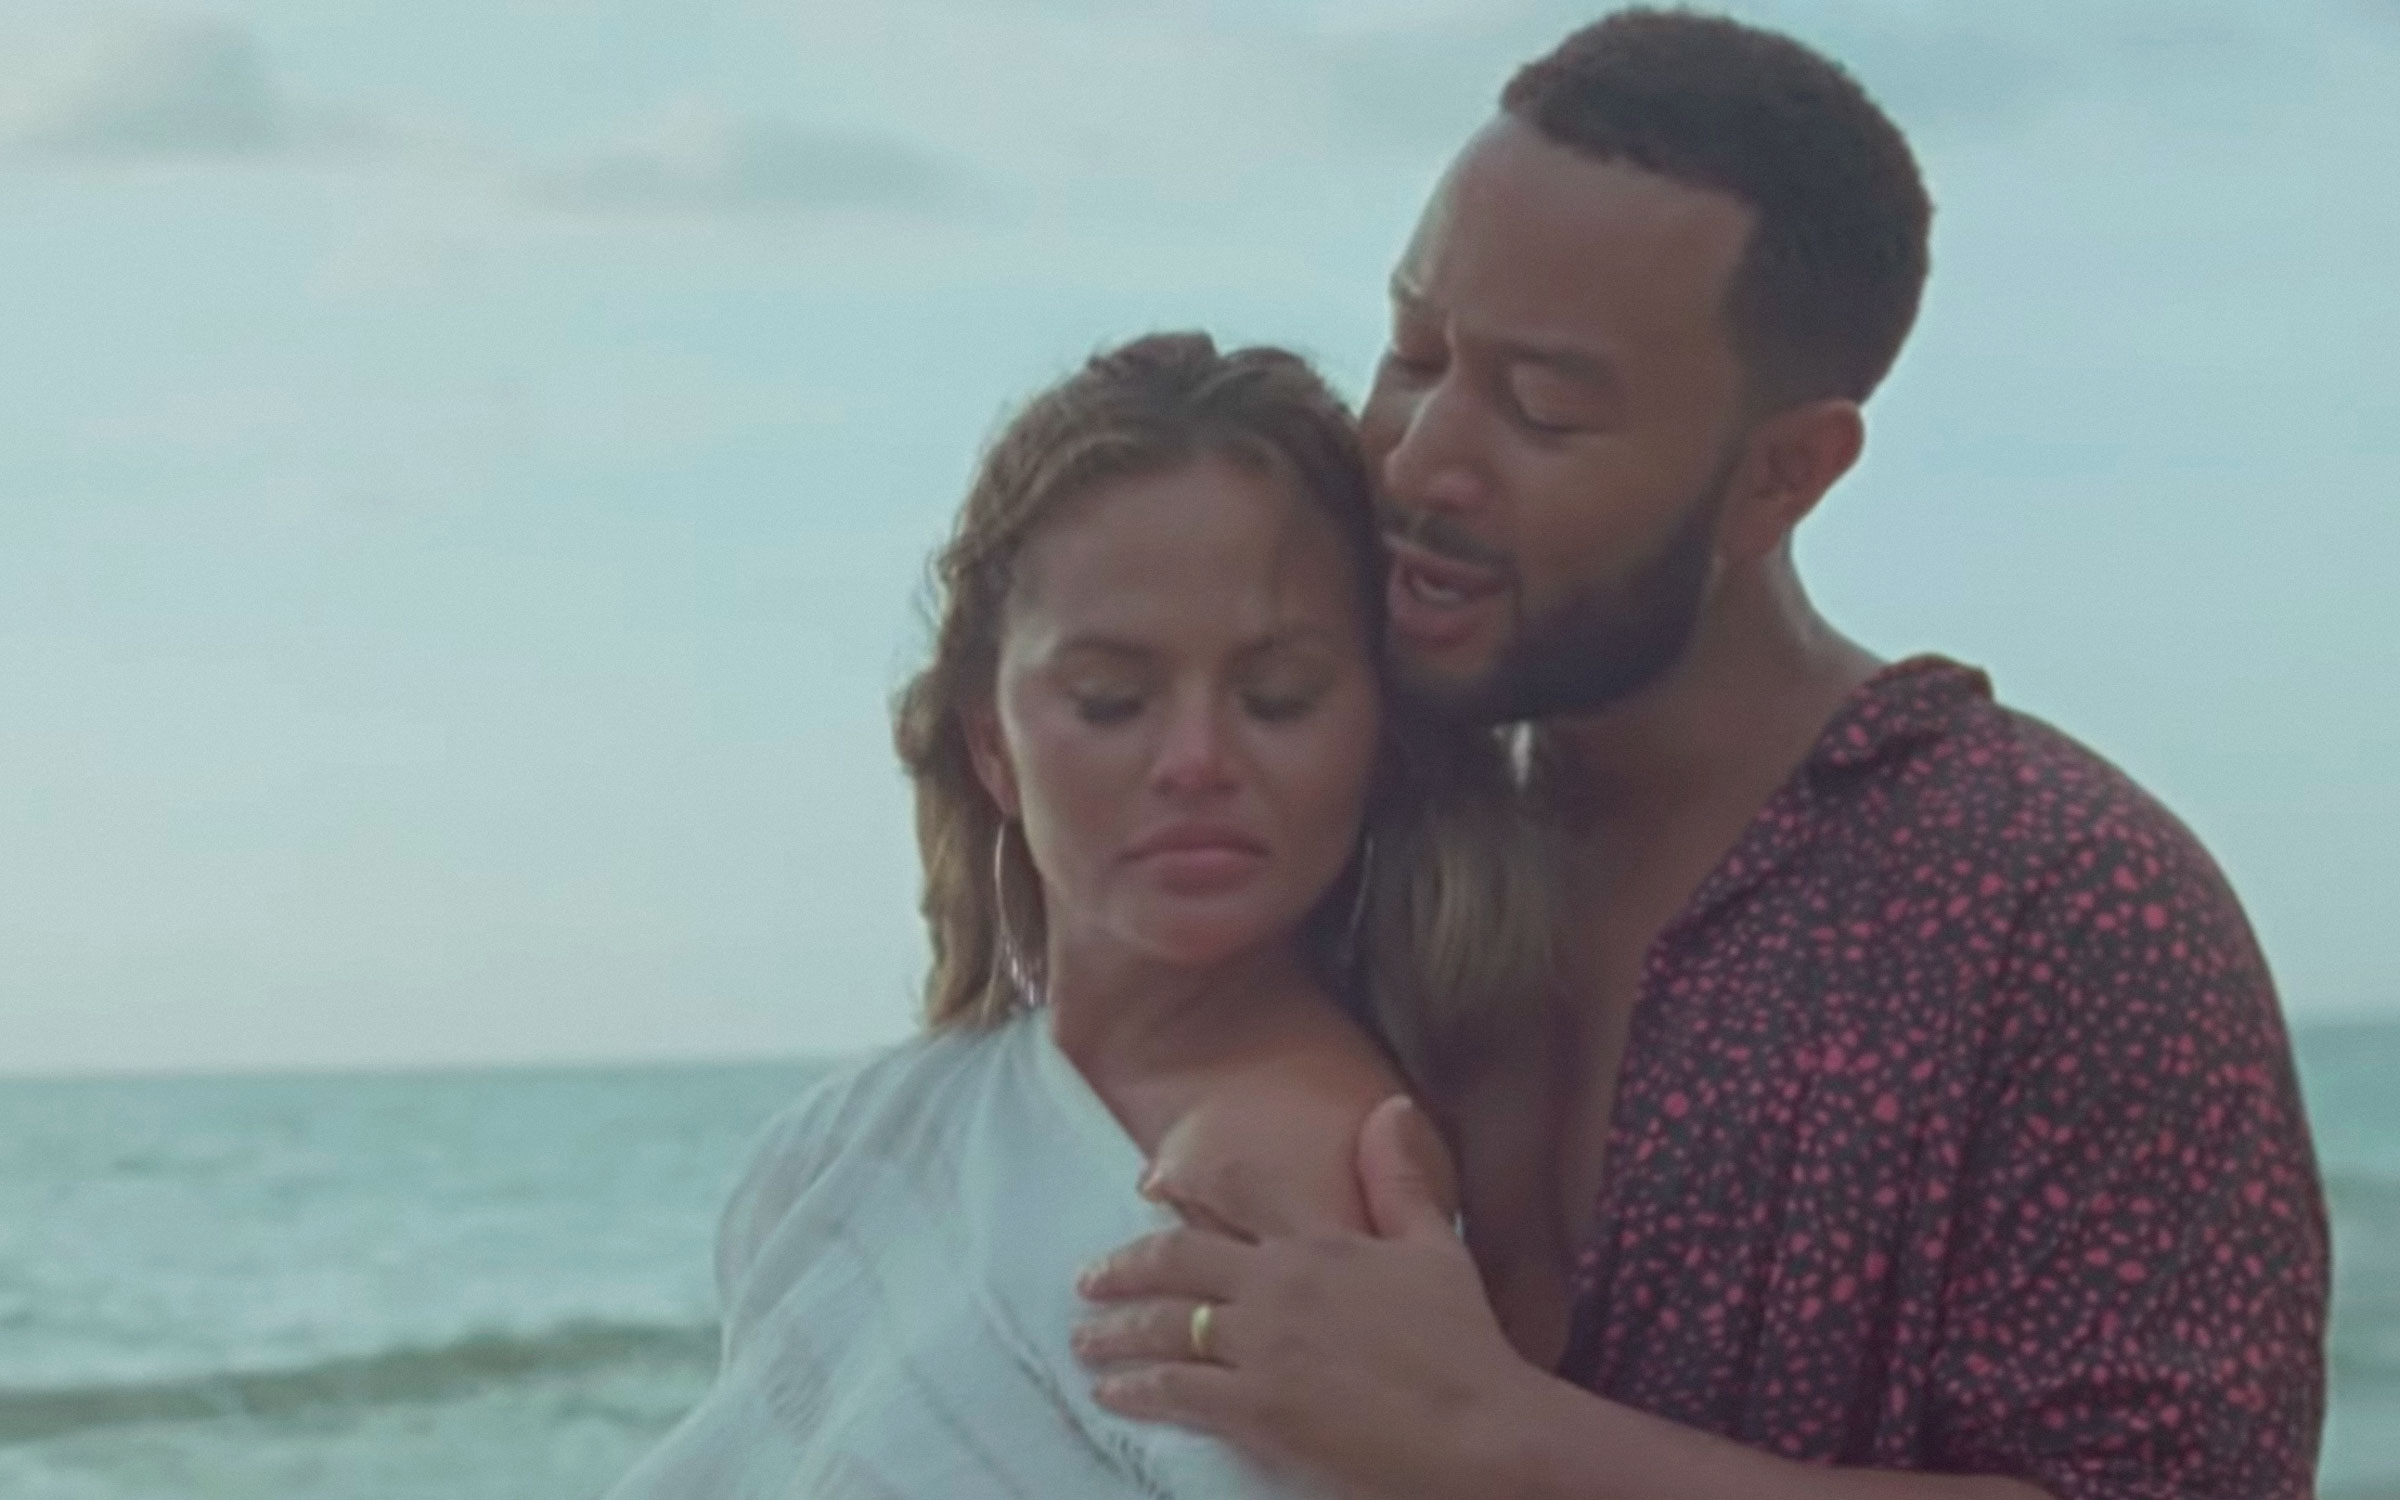 Chrissy Teigen leans against husband John Legend on a beach.